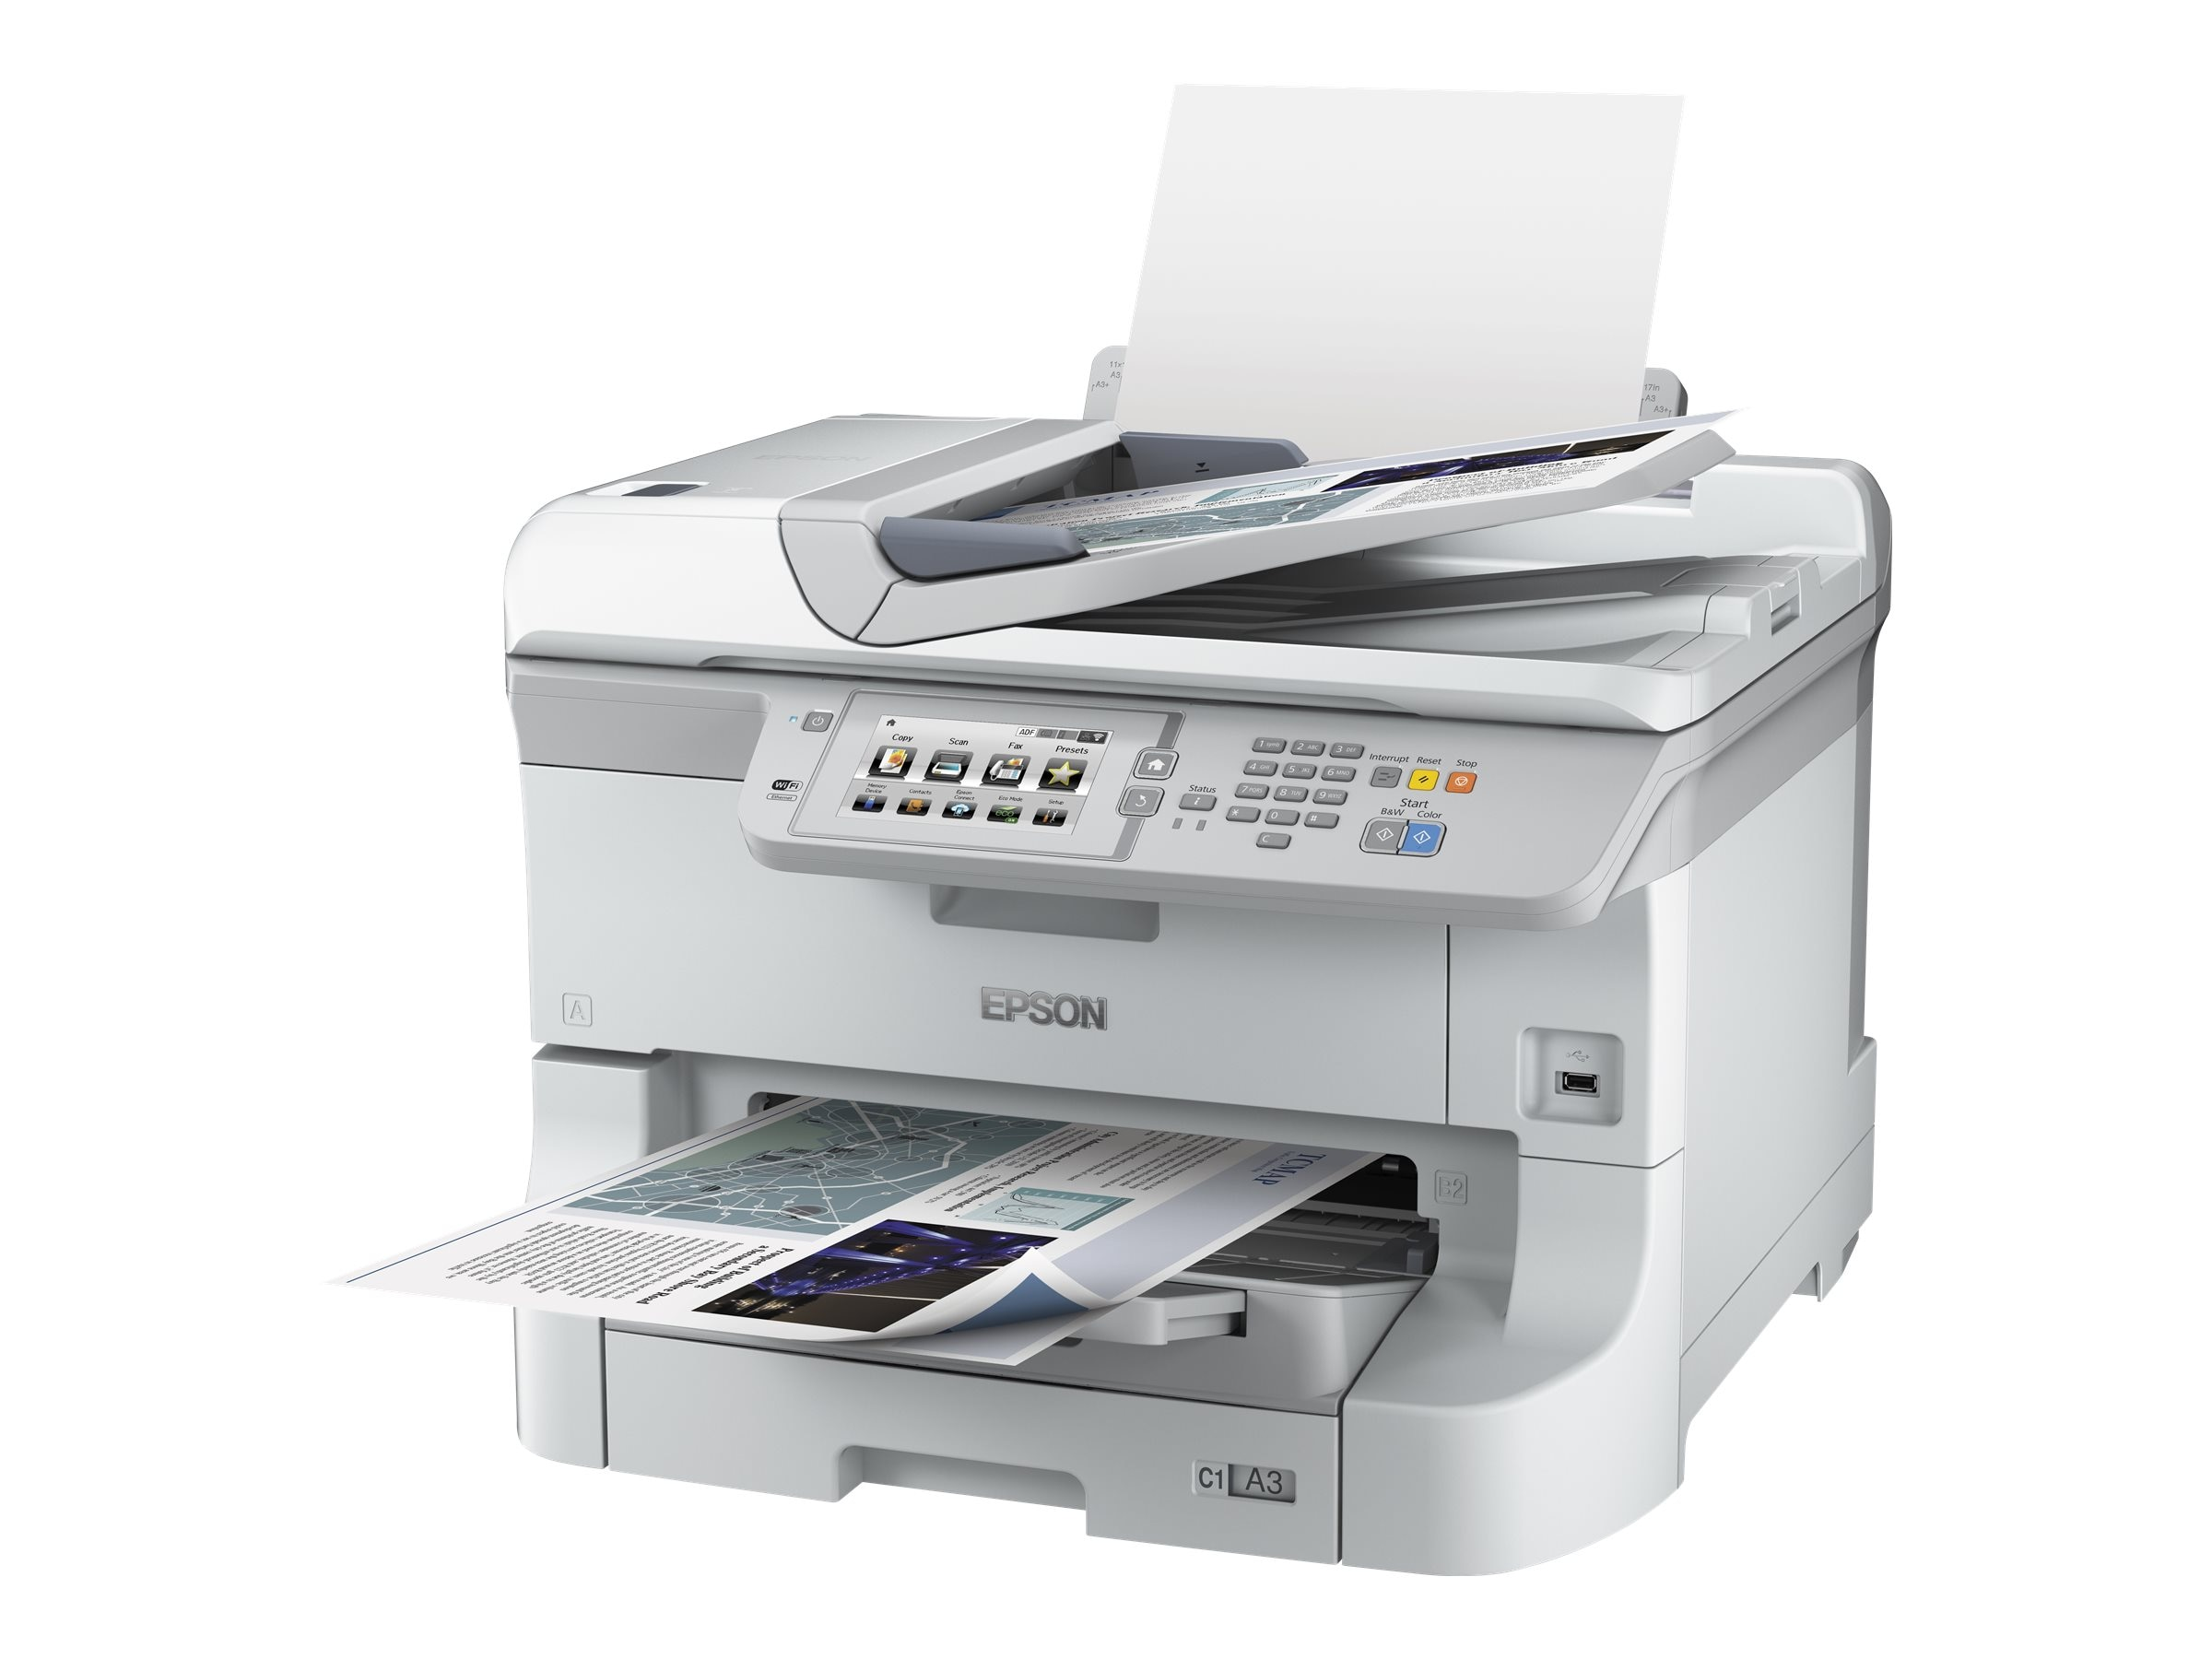 Epson WorkForce Pro WF-8590 Network Multifunction Color Printer, C11CD45201, 30730611, MultiFunction - Ink-Jet